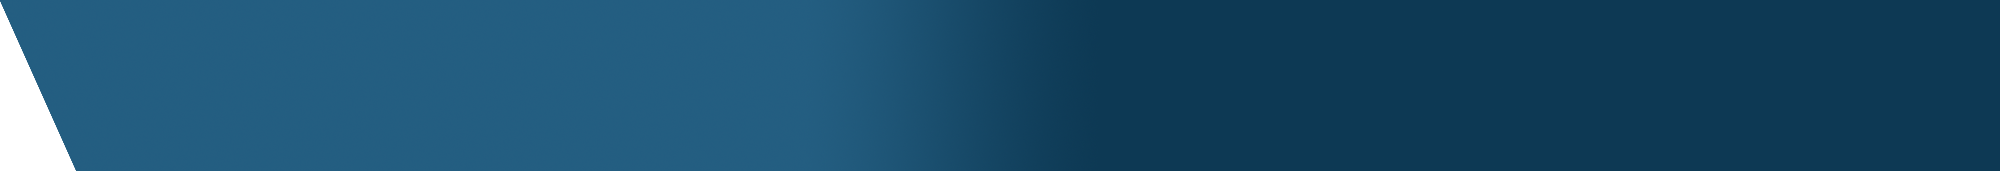 Blue Bar Png Group (+), HD Png.